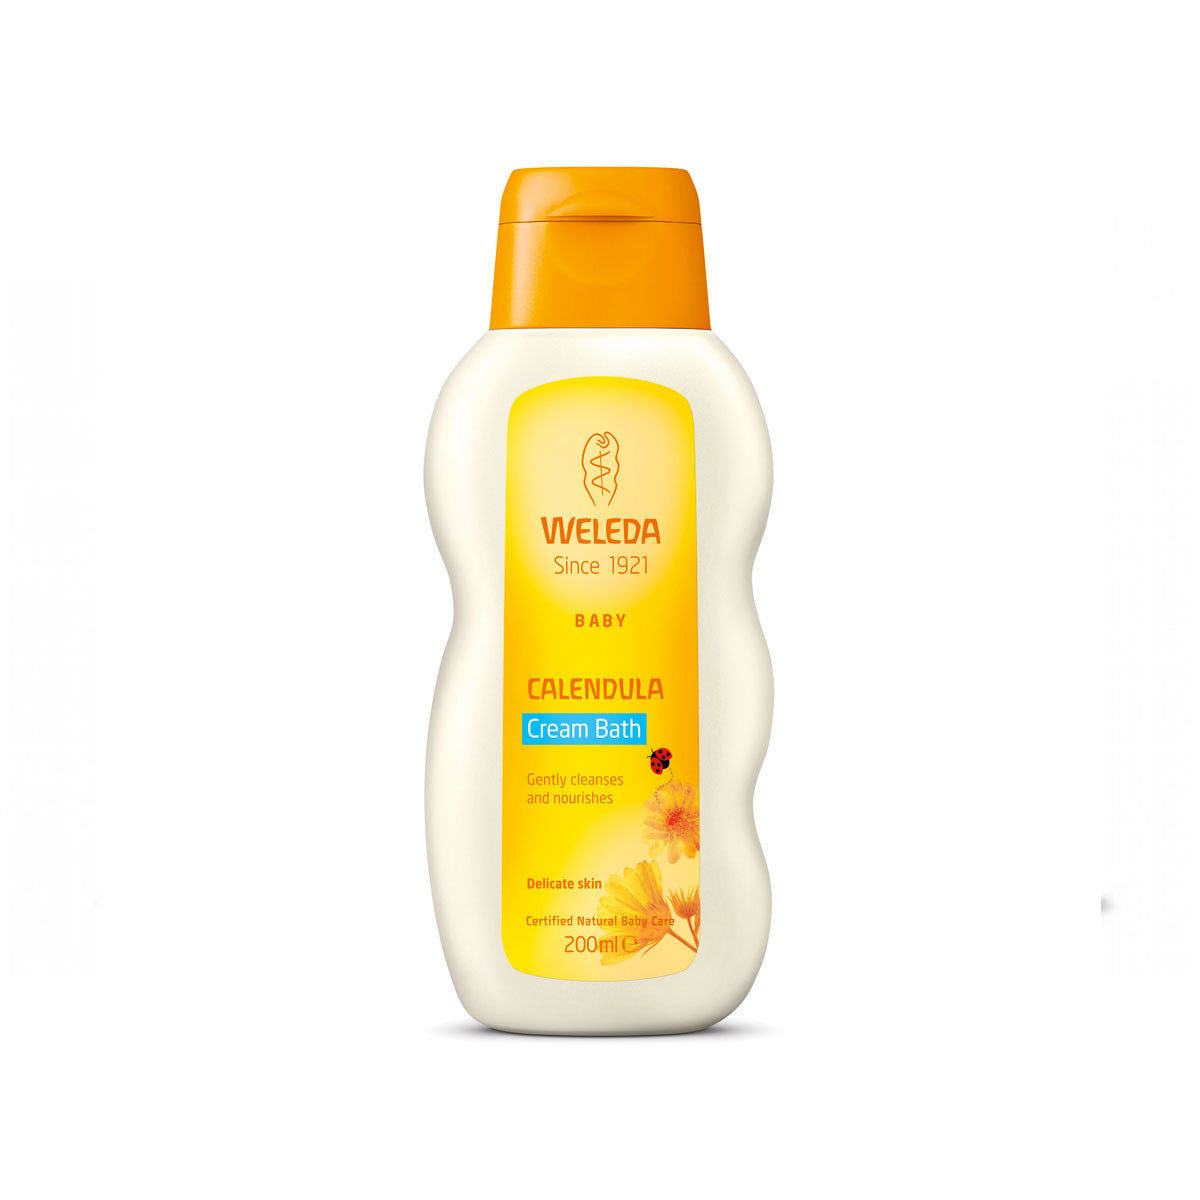 Weleda Calendula Cream Bath 200mL Weleda Bath and Body at Little Earth Nest Eco Shop